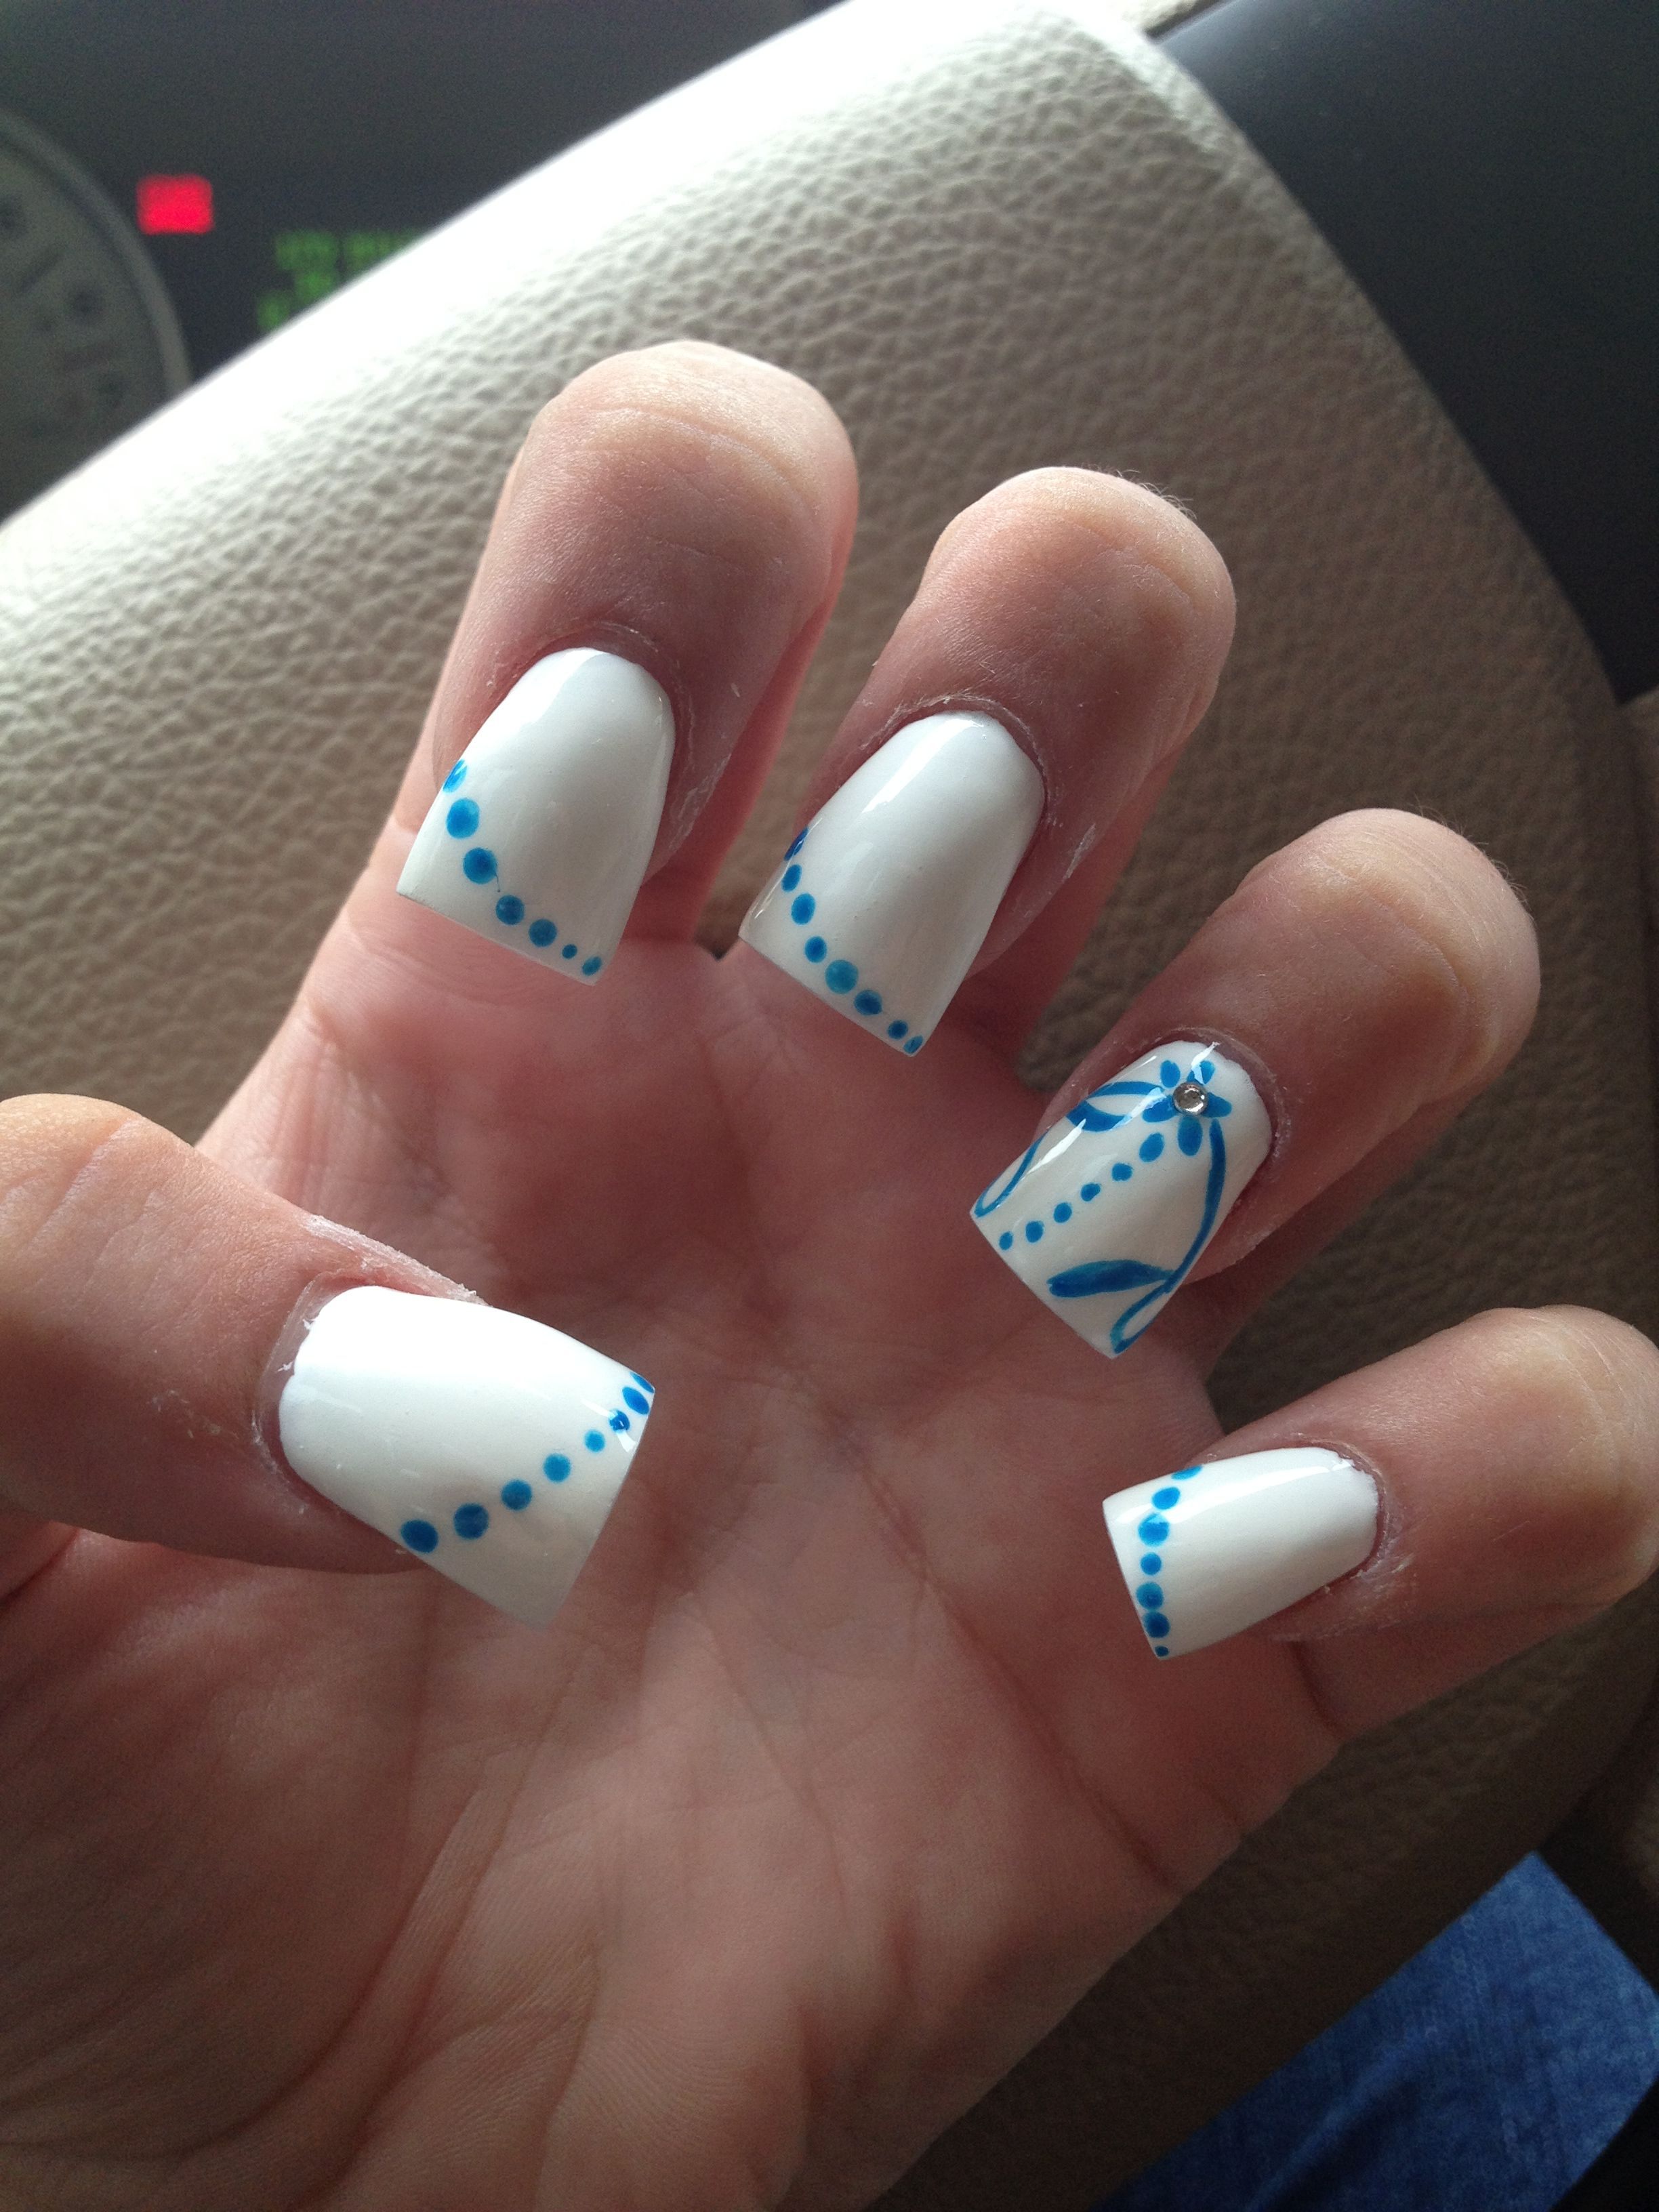 Acrylic tips - White nail polish with blue nail designs & diamond on ...